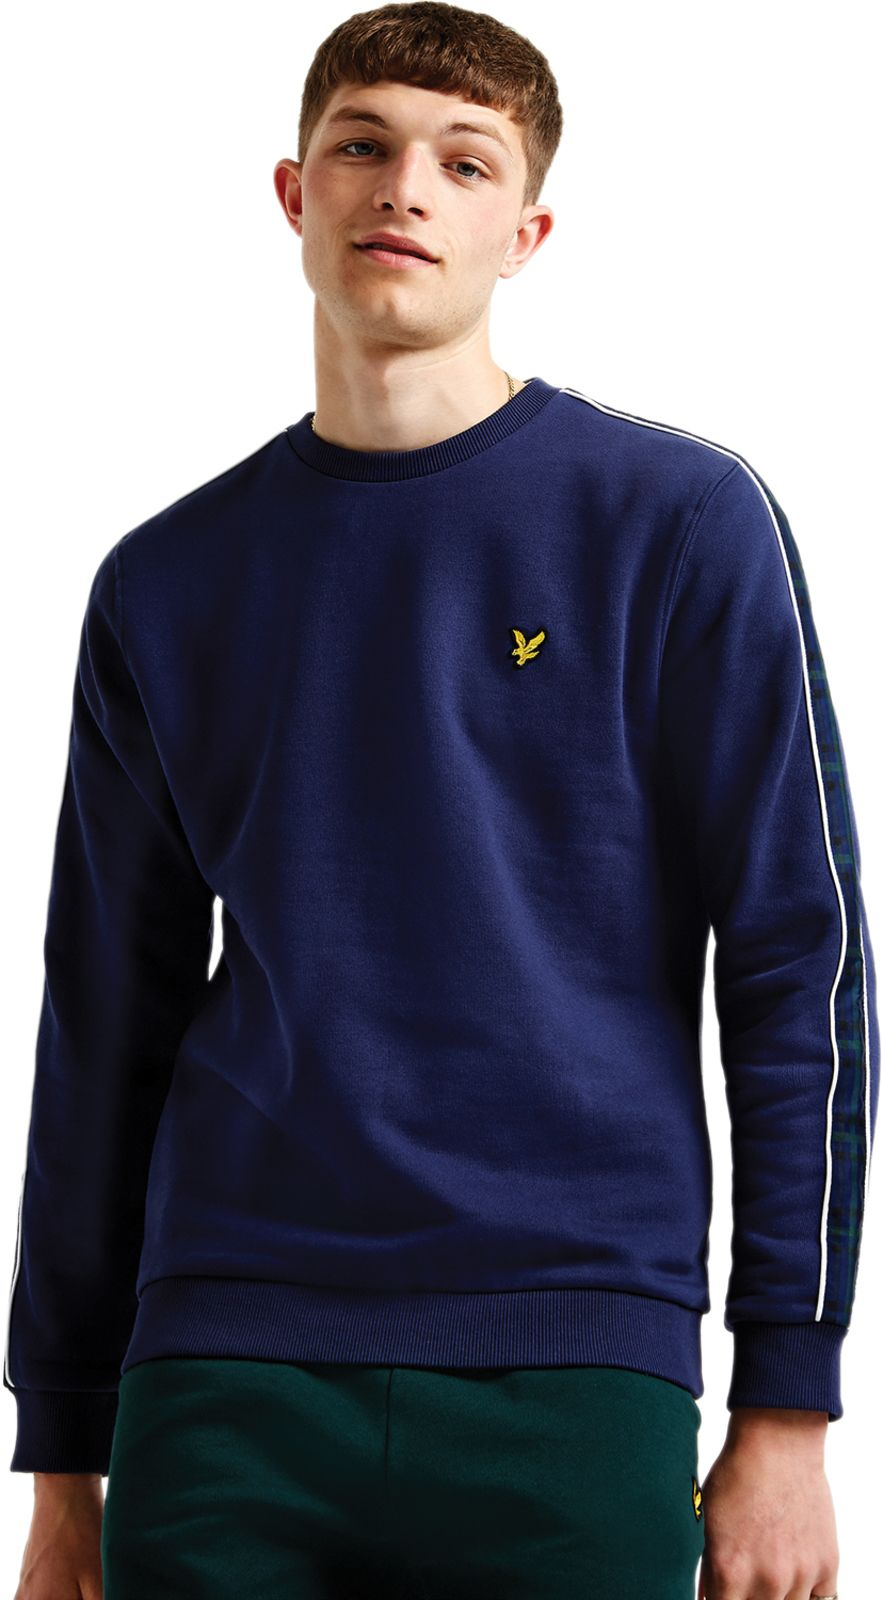 Lyle & Scott Taped Sweatshirt